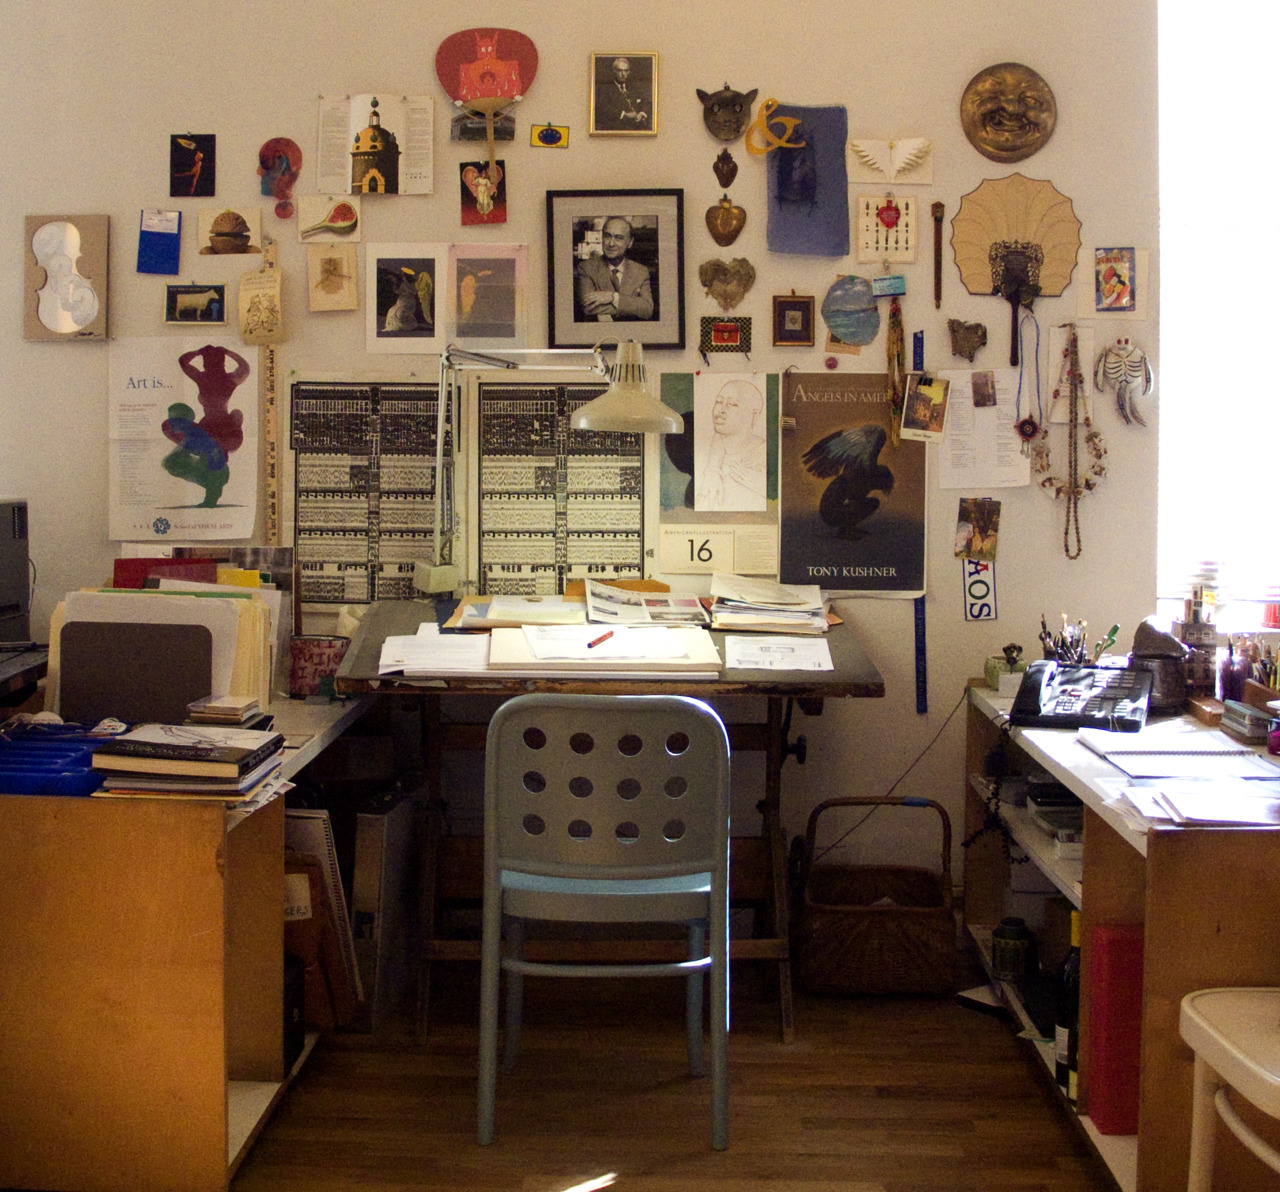 workspaces: Milton Glaser | via from the desk of Are you a creature of habit?  In other words, have you been working the same way at your desk since you started? Yes, profoundly.  I hate change, except in the work itself. I still work at my desk in the same way as I've done for the last 60 years.